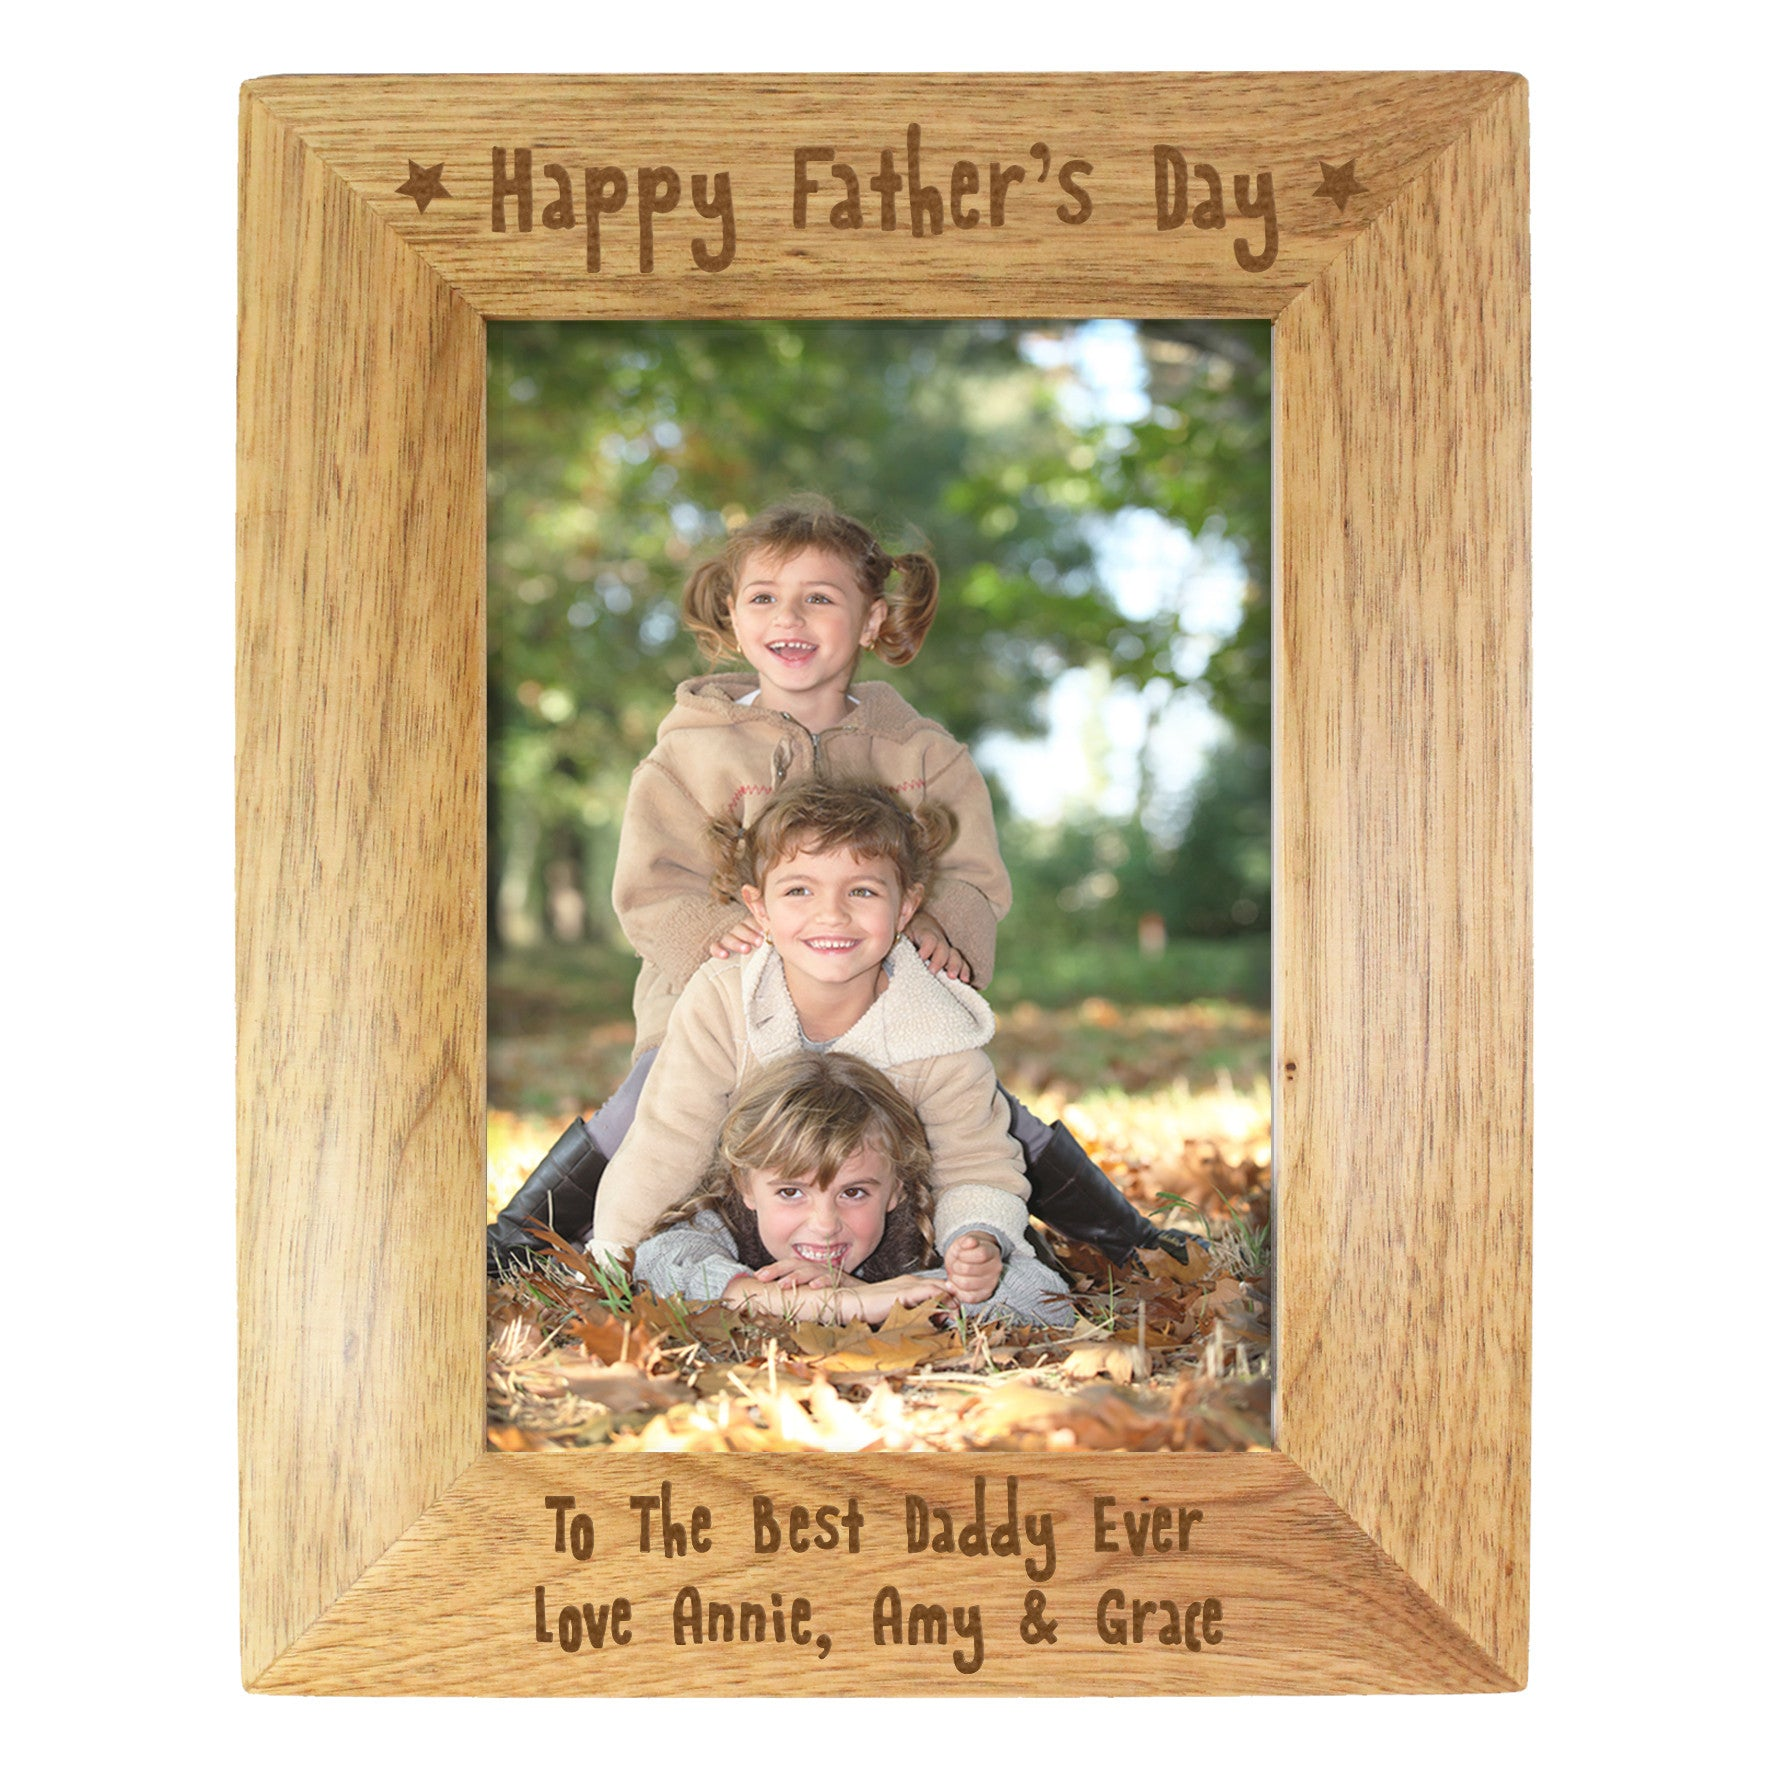 Personalised Happy Father's Day Photo Frame (6x4) - Personalised Gift Solutions - 1